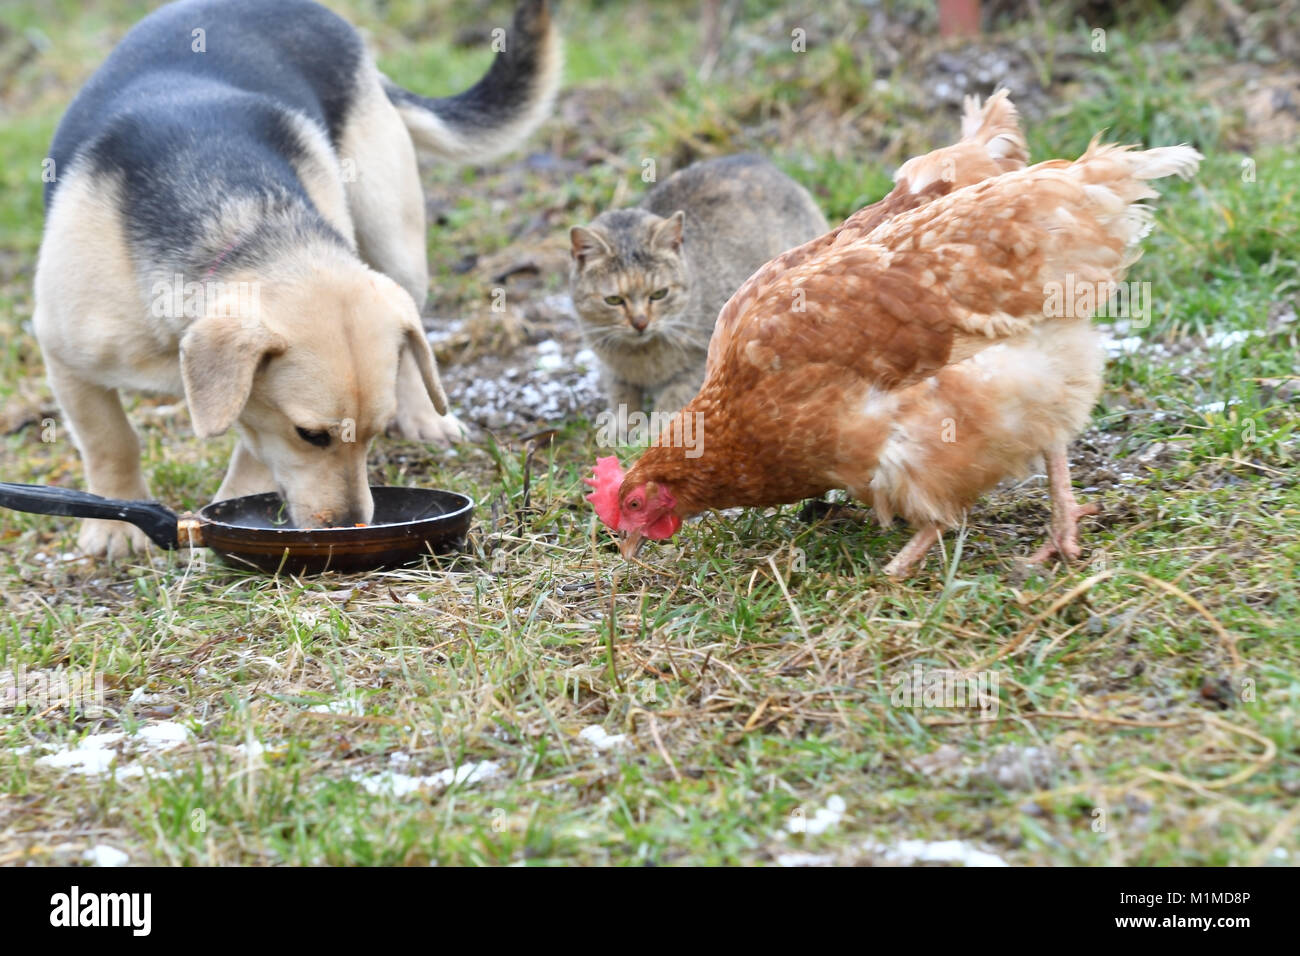 Domestic animals chicken hen dog and cat eating together from the grass as a best friends - Stock Image